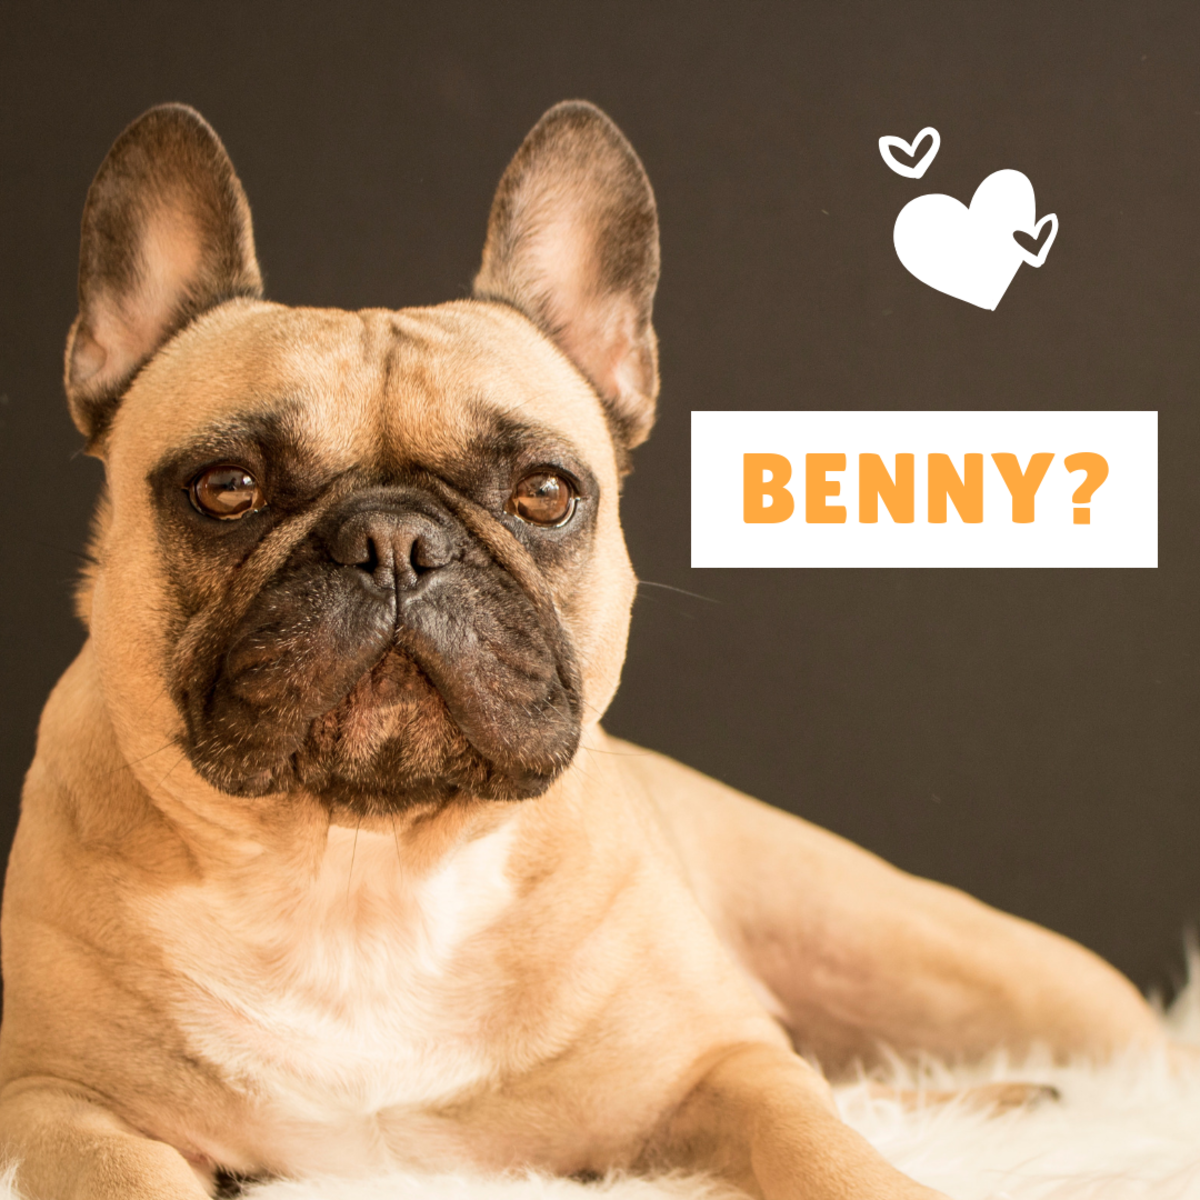 Is your new best friend a Benny?